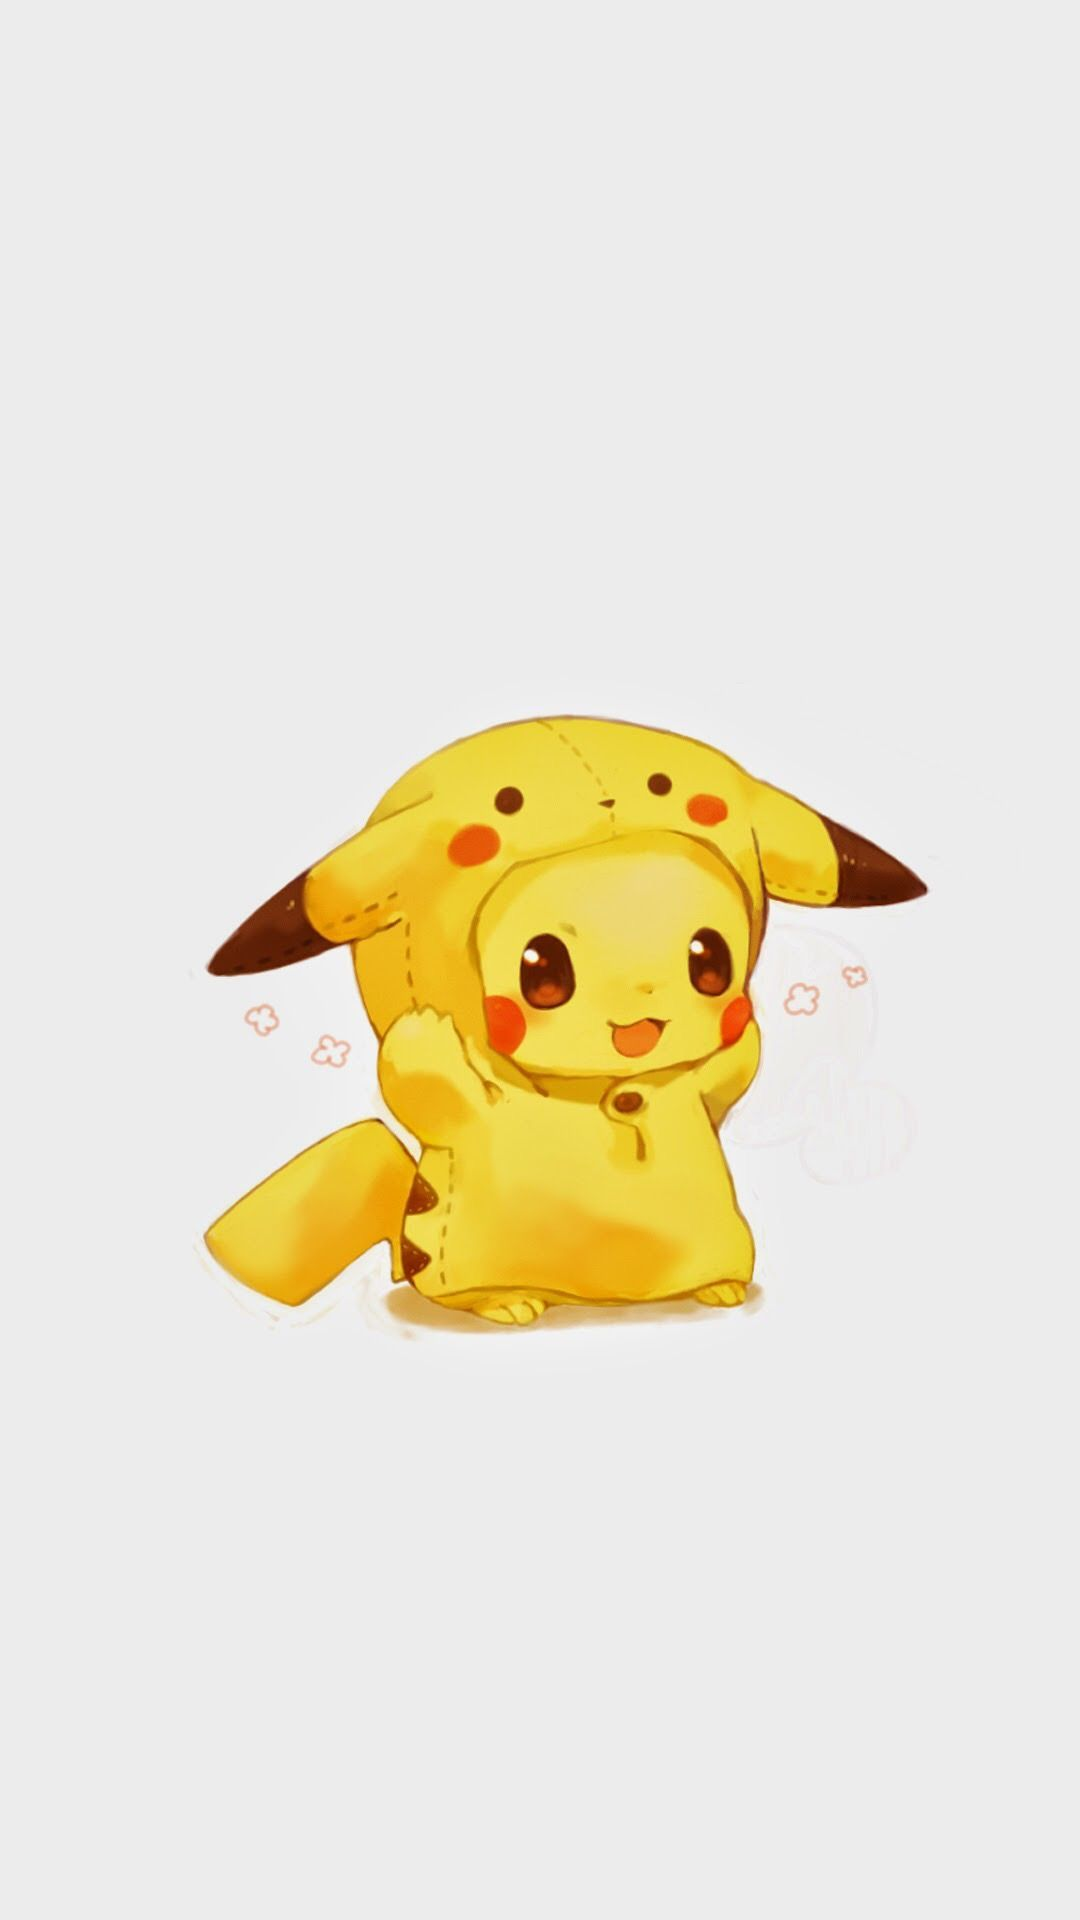 Cute Pikachu Picture design – Downloads Some Today